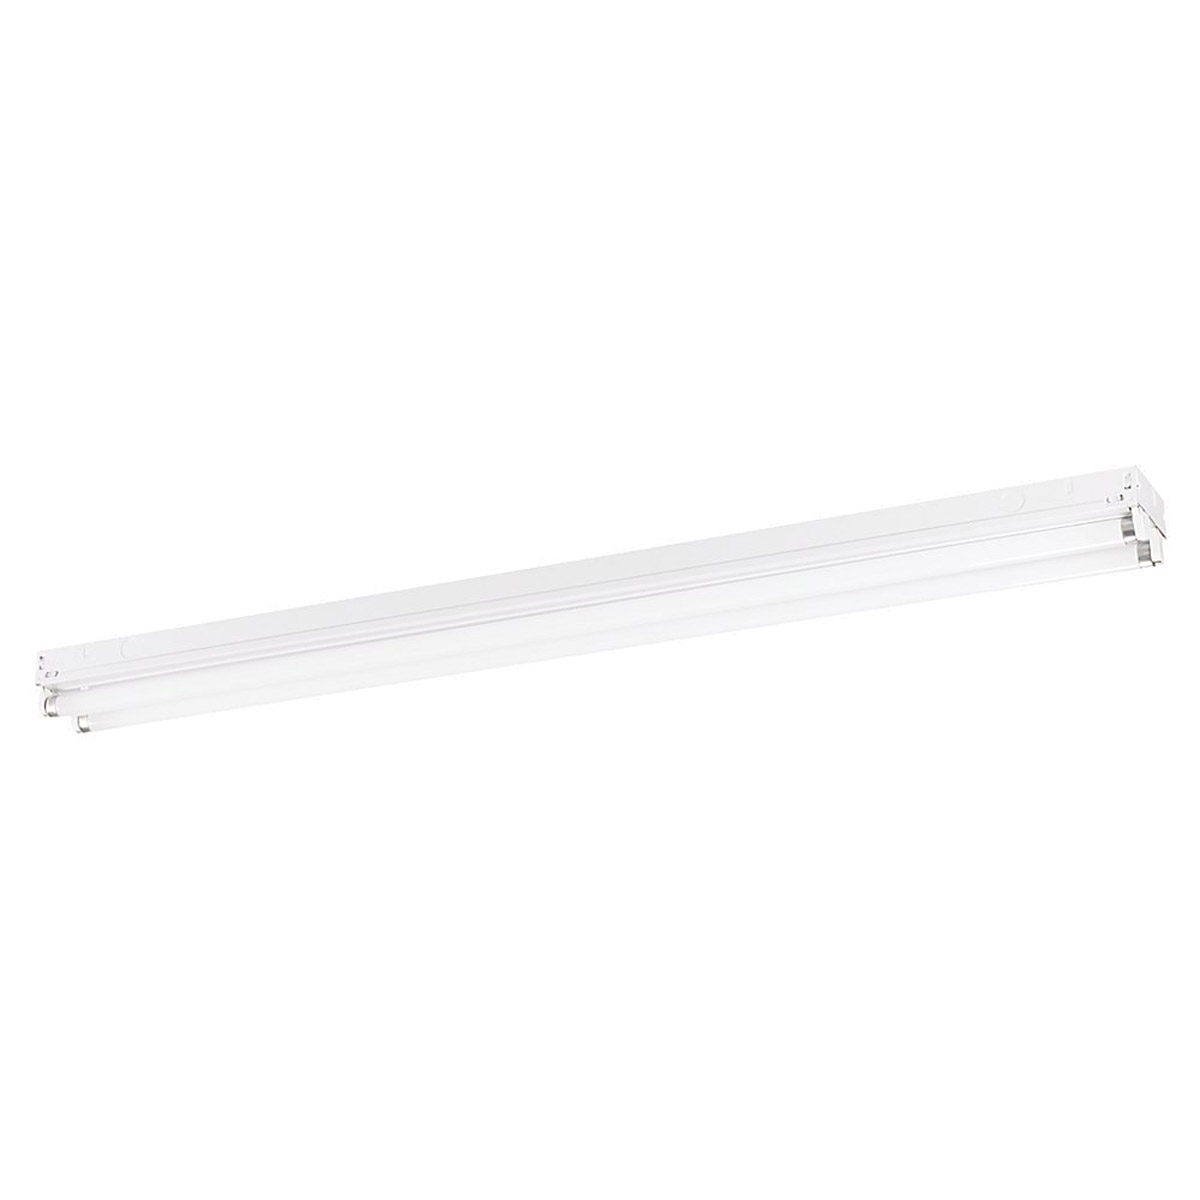 Sea Gull Lighting Signature 2 Light Fluorescent Strip Light in White 59023L-15